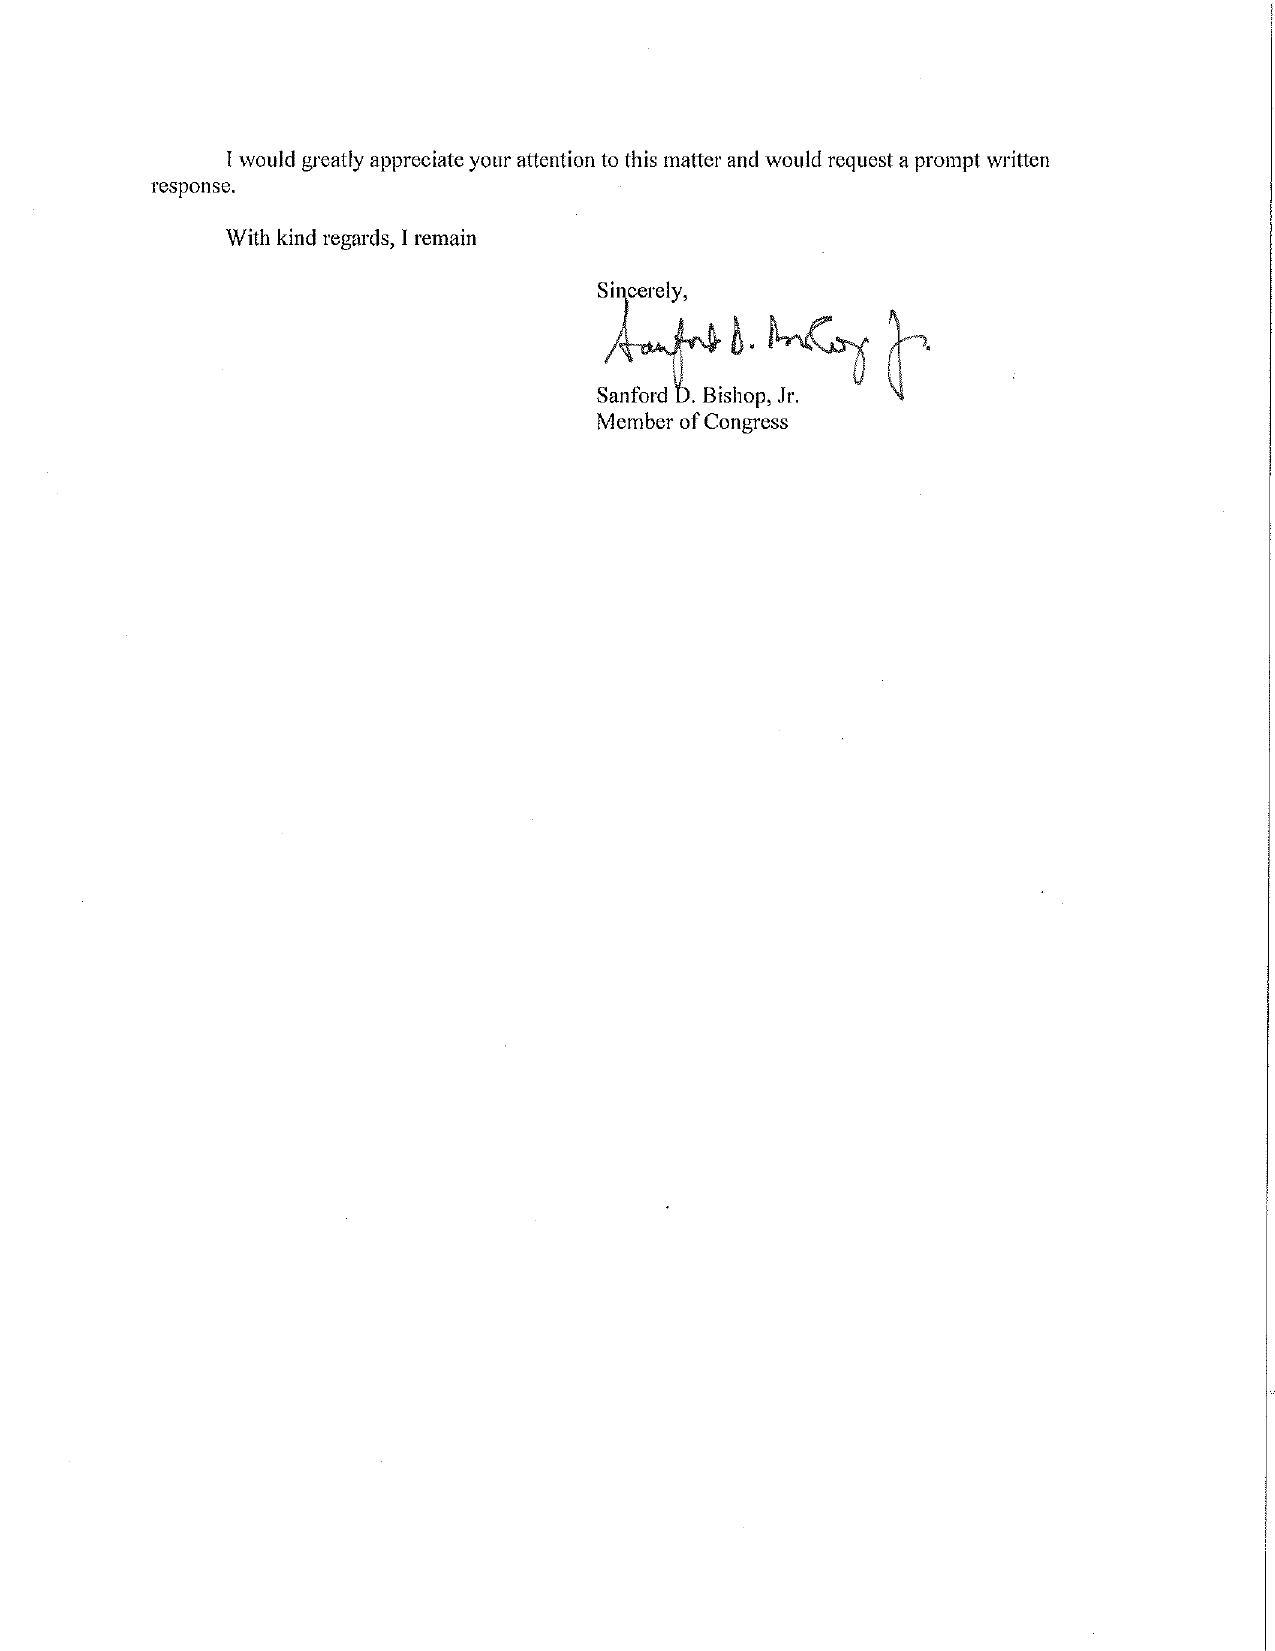 1275x1651 Request a prompt written response, in Request Supplementary Environmental Impact Statement, by Sanford Bishop, 27 May 2016